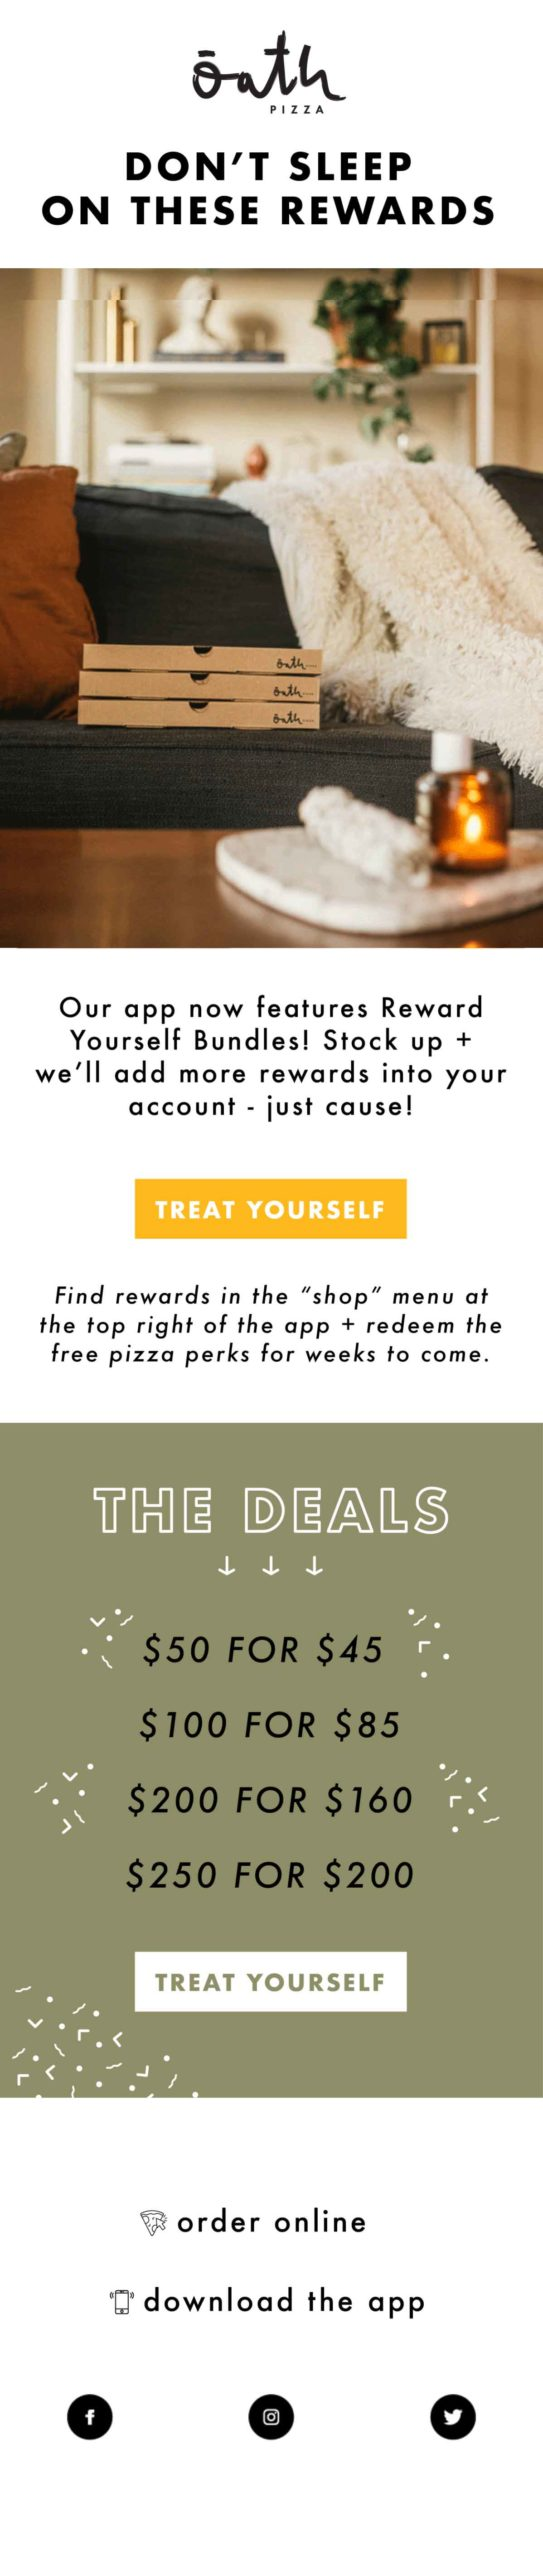 Oath Pizza don't sleep on these deals email